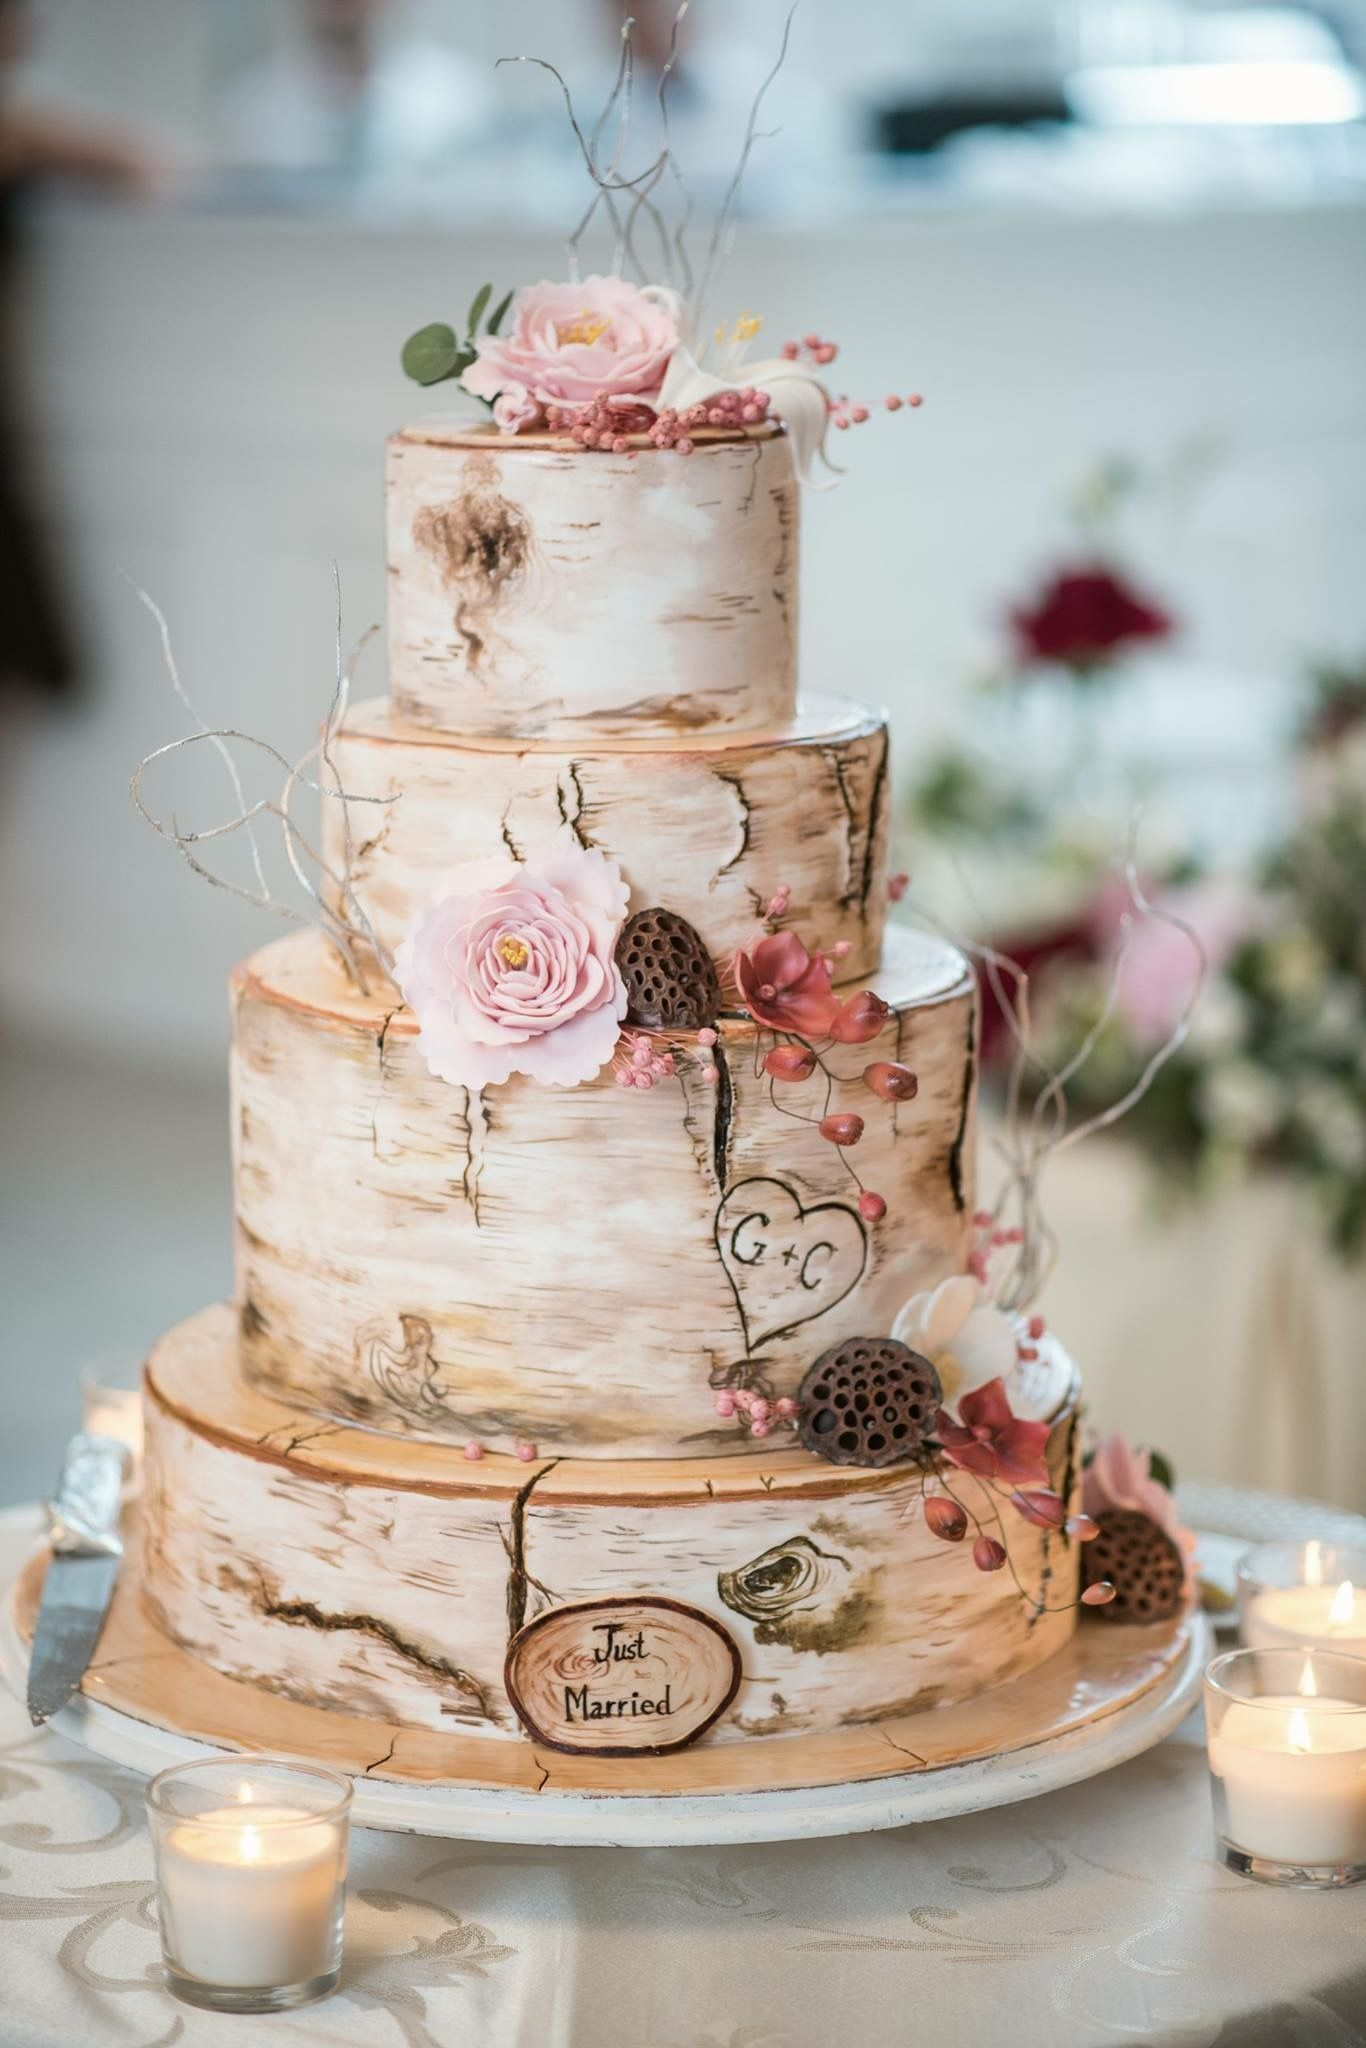 Pin By Andreea Iovanel On Wedding Cakes In